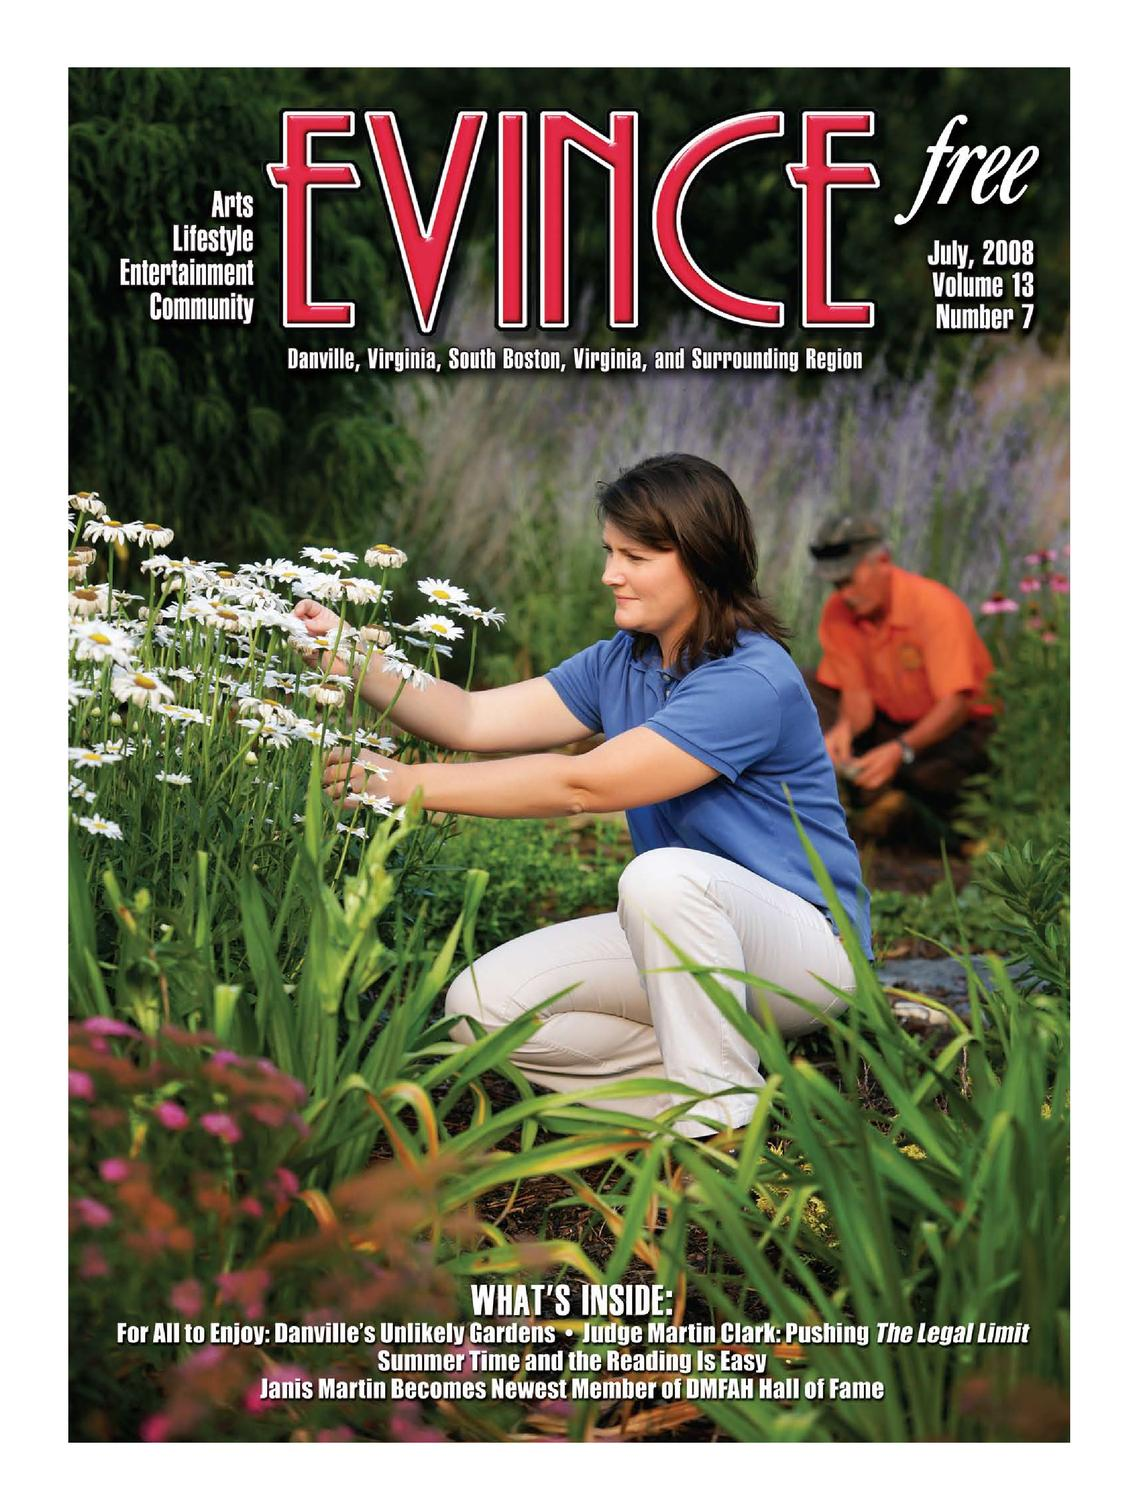 Evince July 08 by Andrew Brooks Media Group - issuu